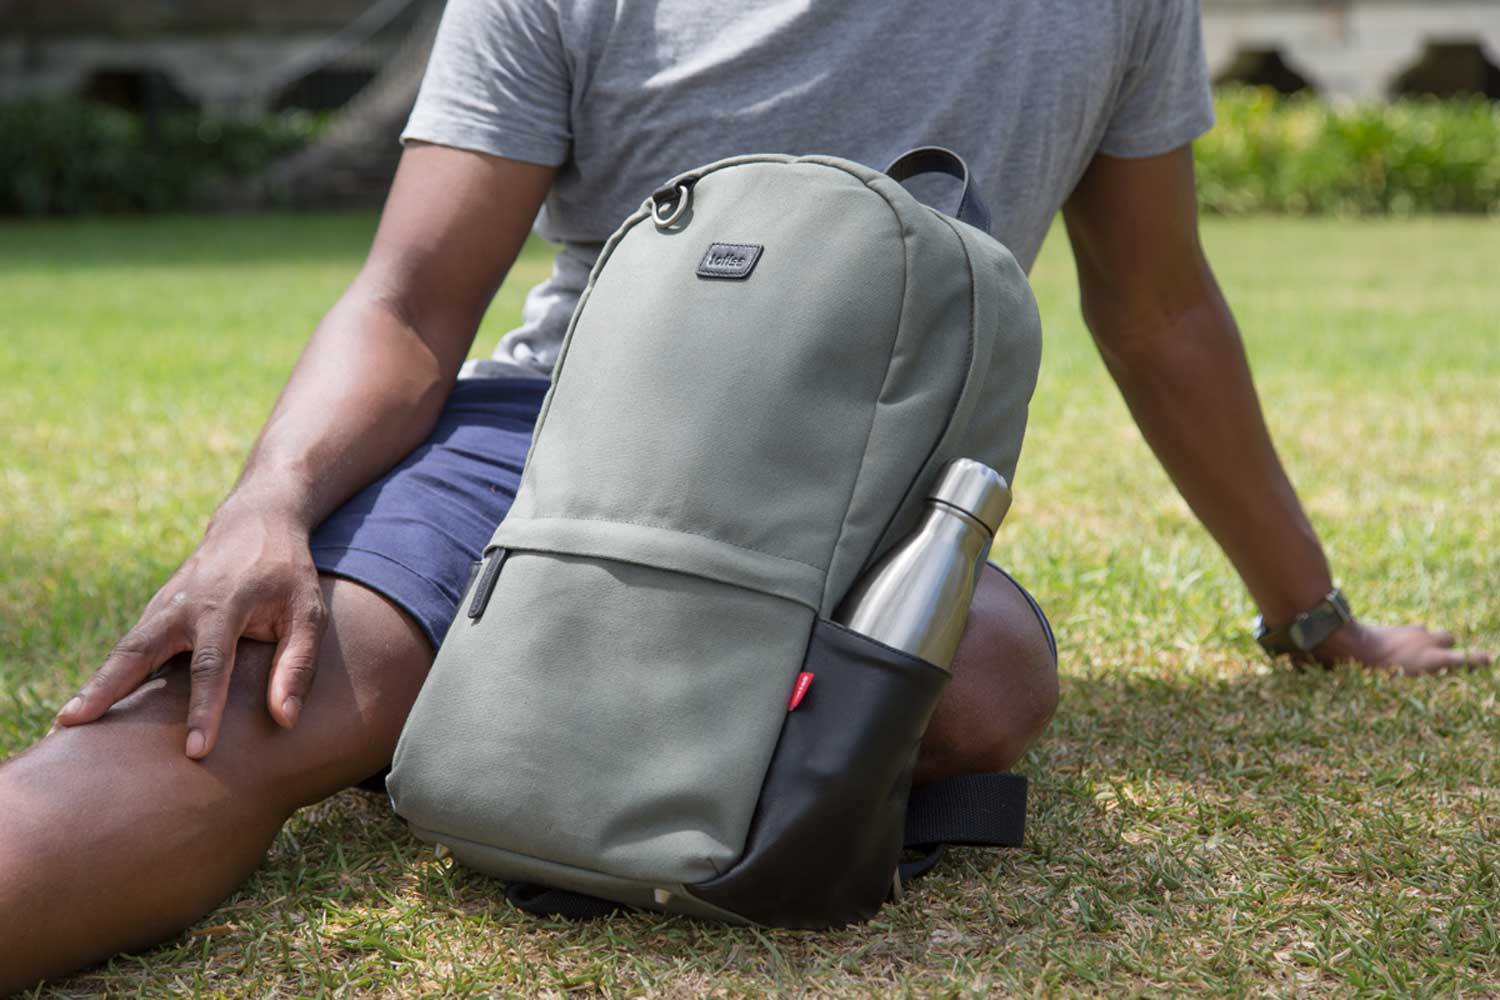 Toffee Berlin Backpack with Steel Water Bottle